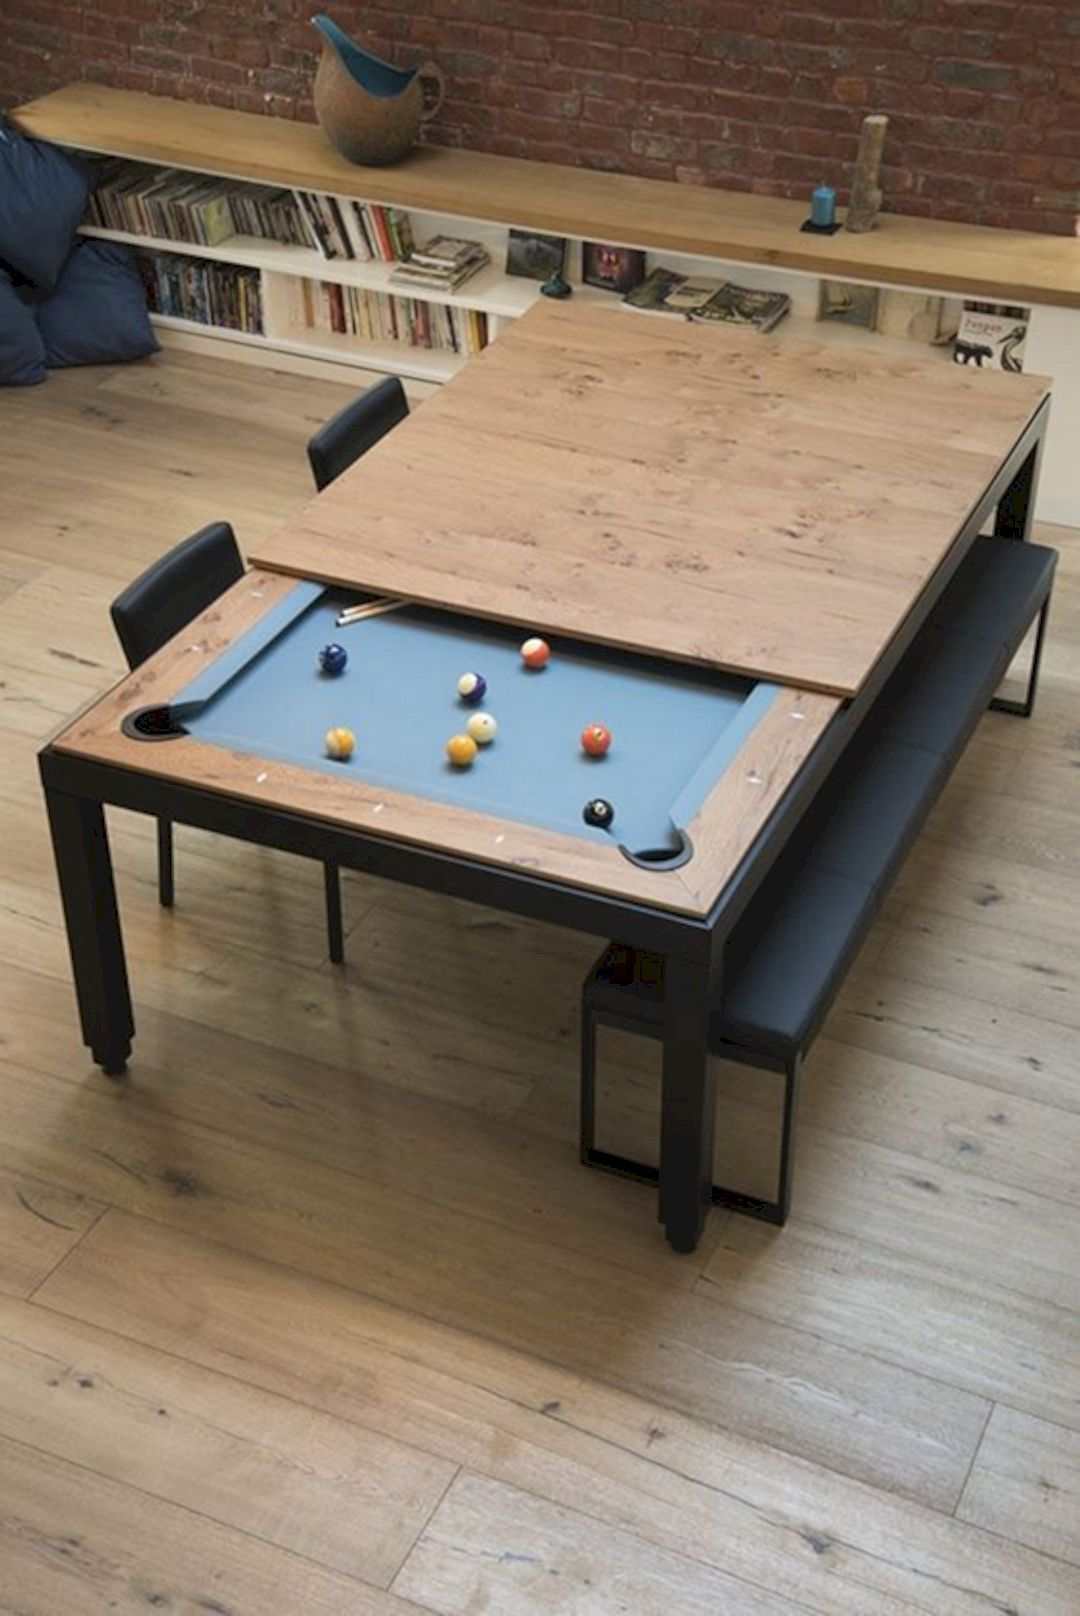 Etonnant Modern Interior Design: 126 Ideas For Your Home Renovation. Pool Table ...